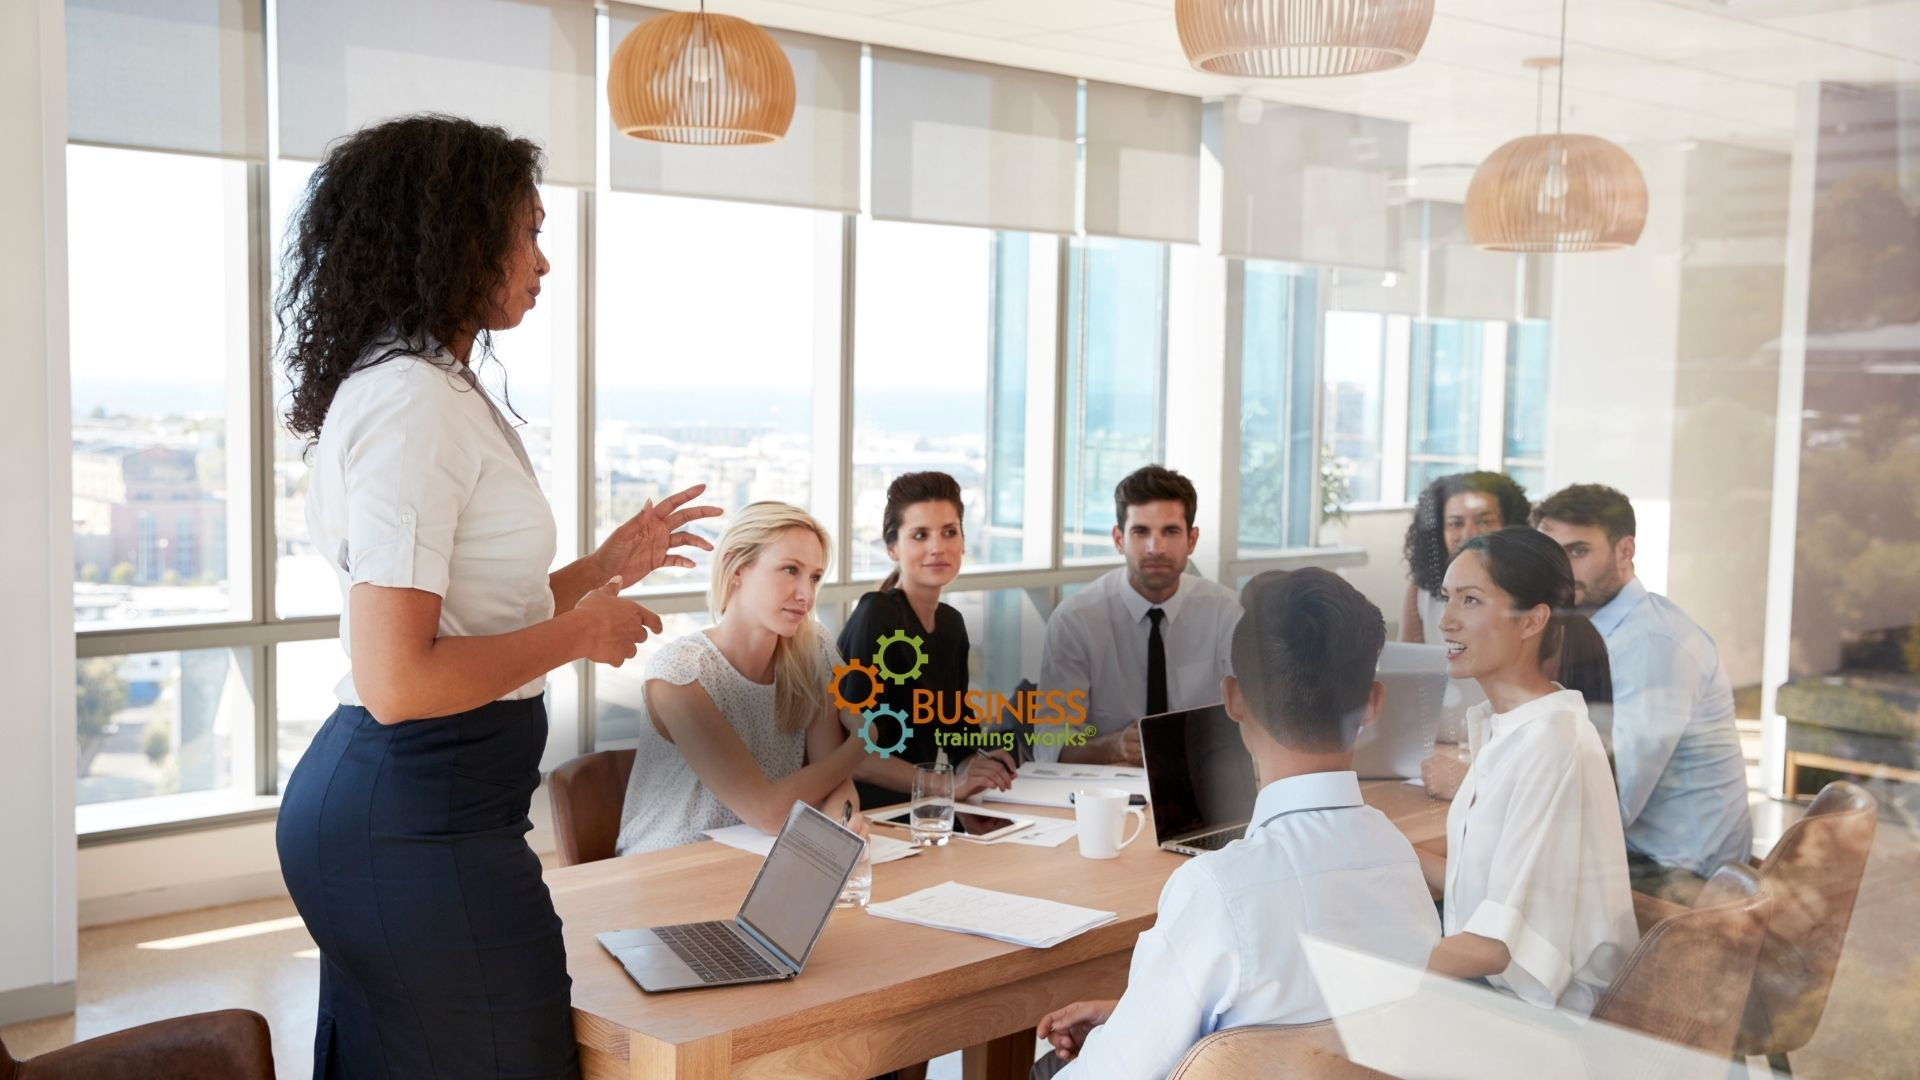 Improve Your Team's Presentations to Clients